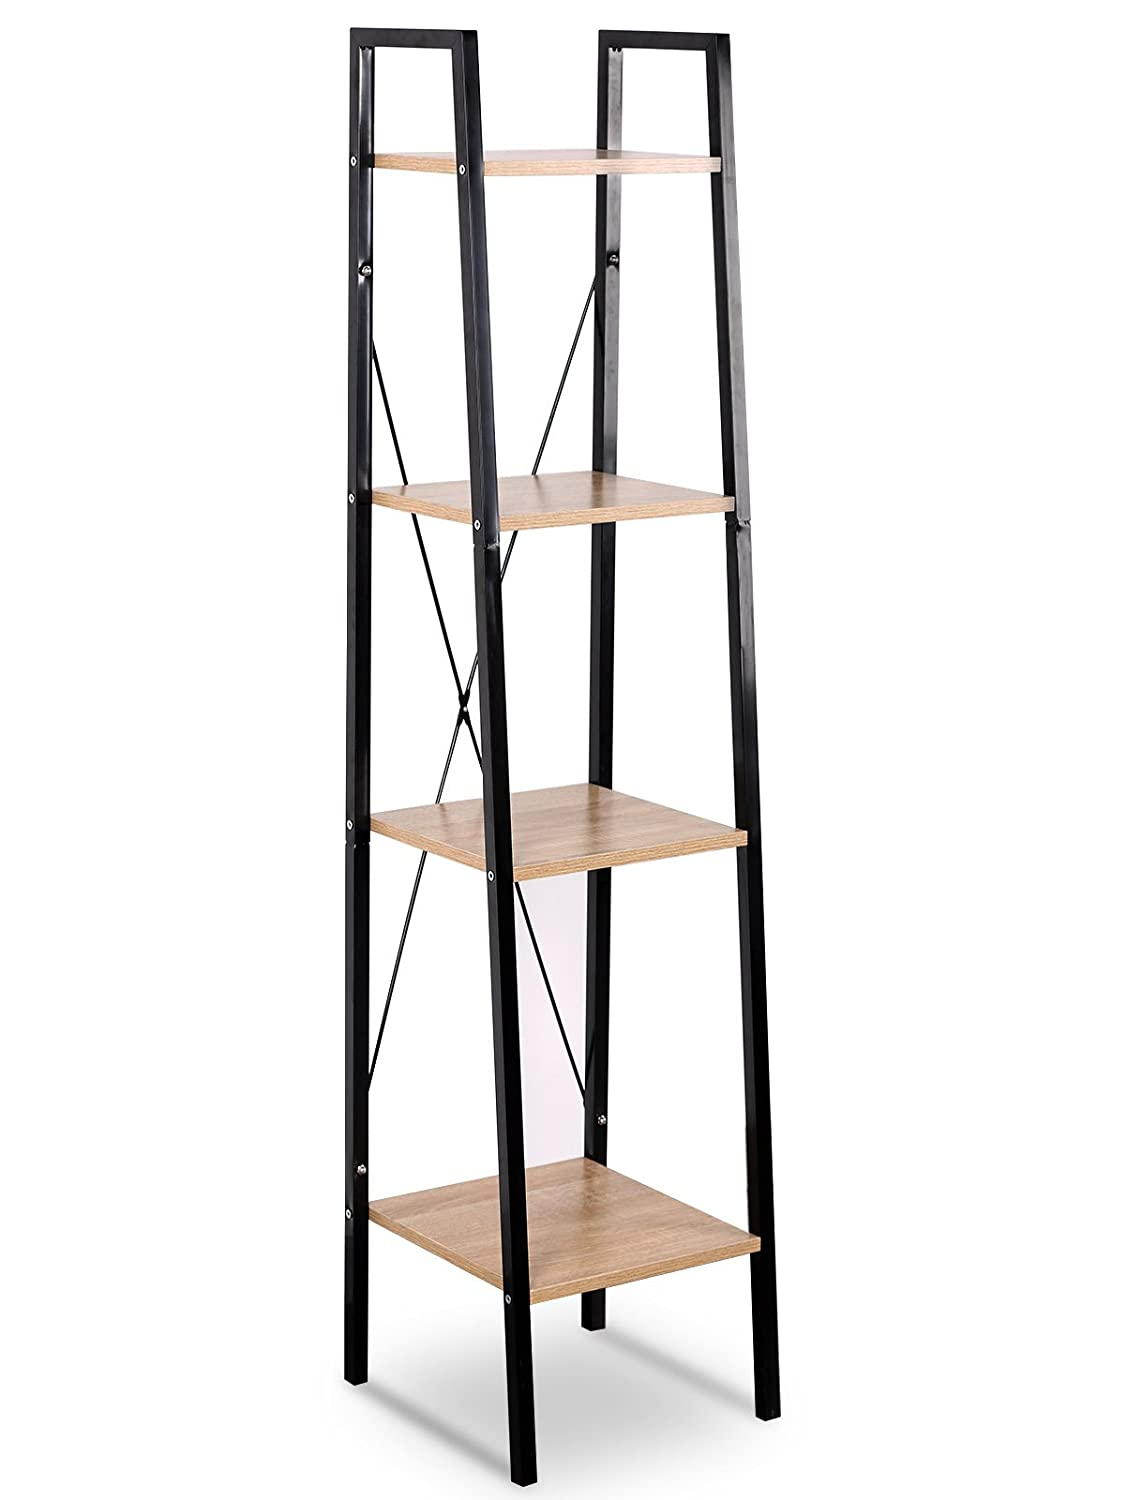 WOLTU Corner Shelf Unit Heavy Duty Wood with 4 Shelf Shelving, 4 Tiers Bookcase, Corner Bookcase Tall for Home Office Use